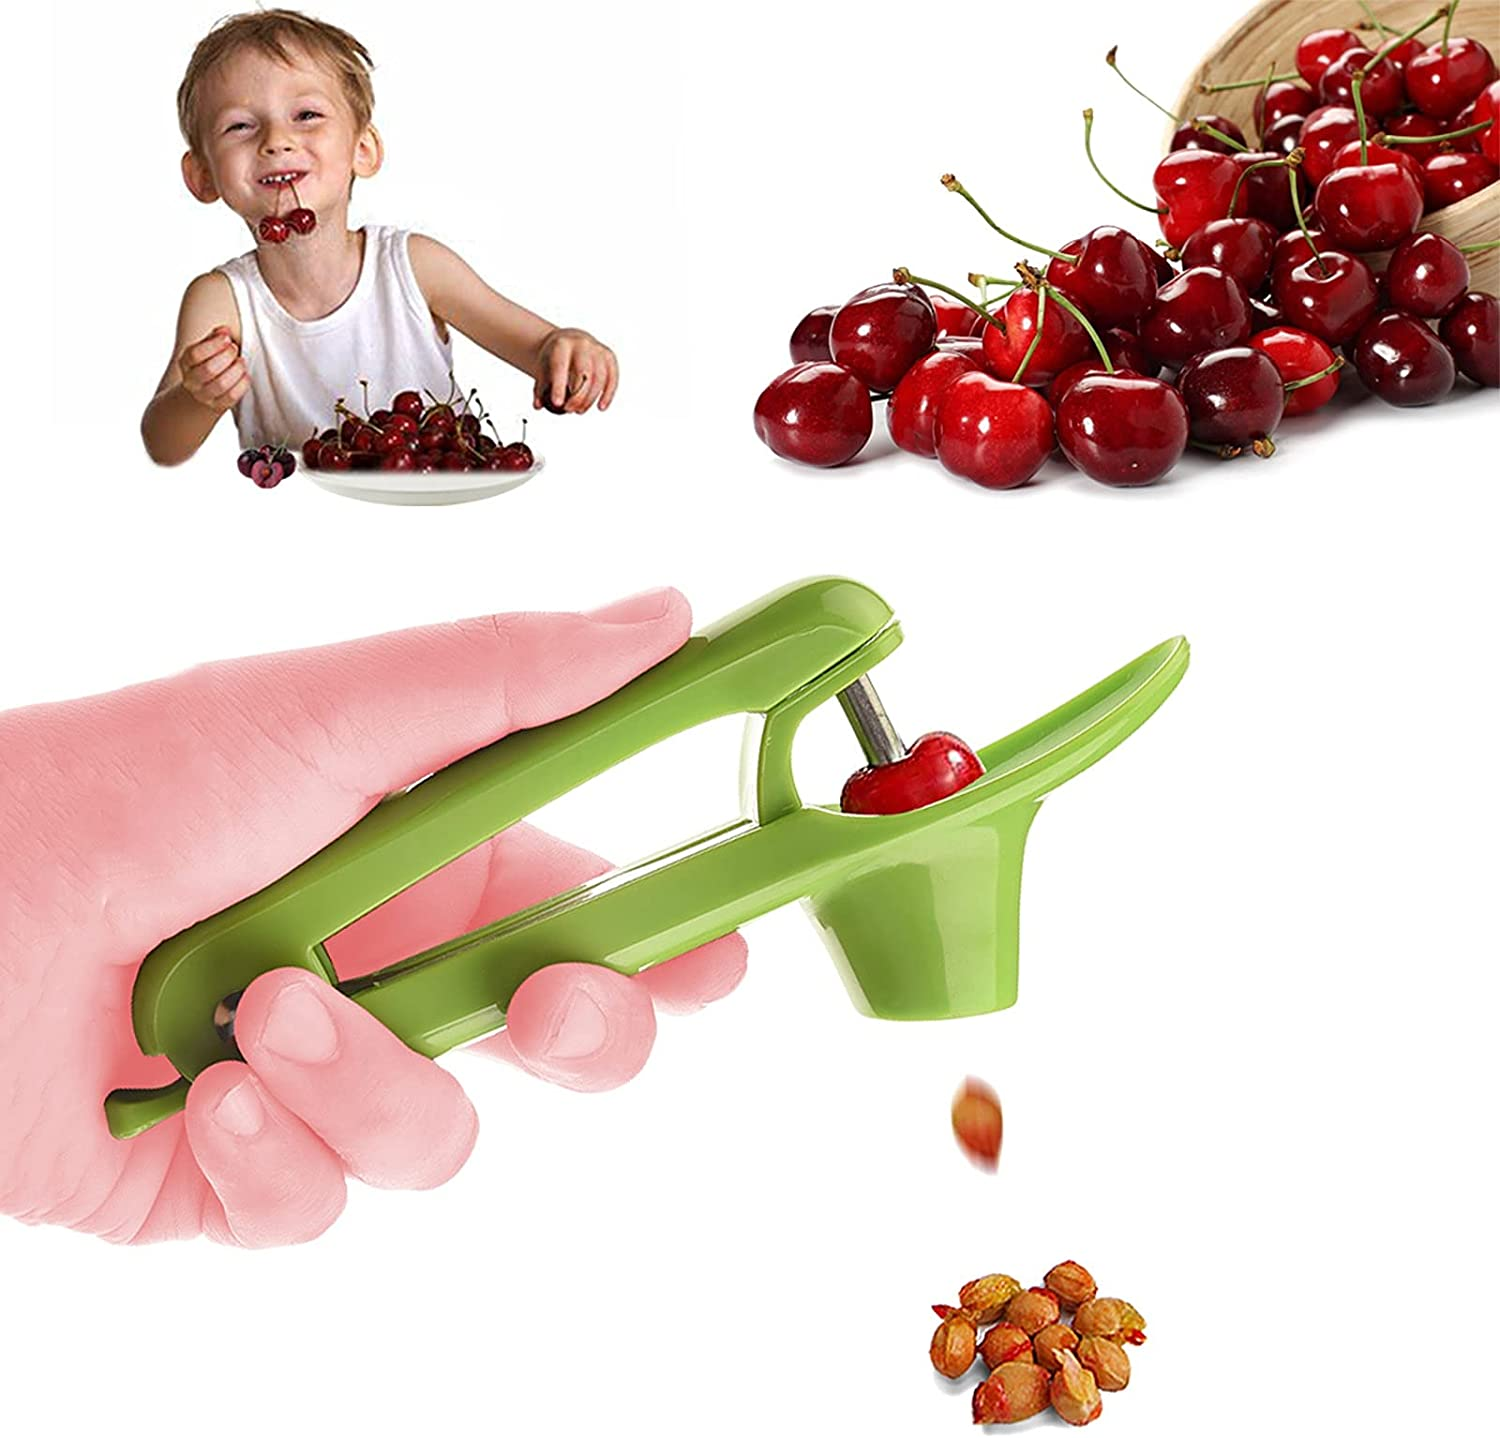 Cherry Pitter Machine, Fruit Seed Remover, Kitchen Tool Olive Re